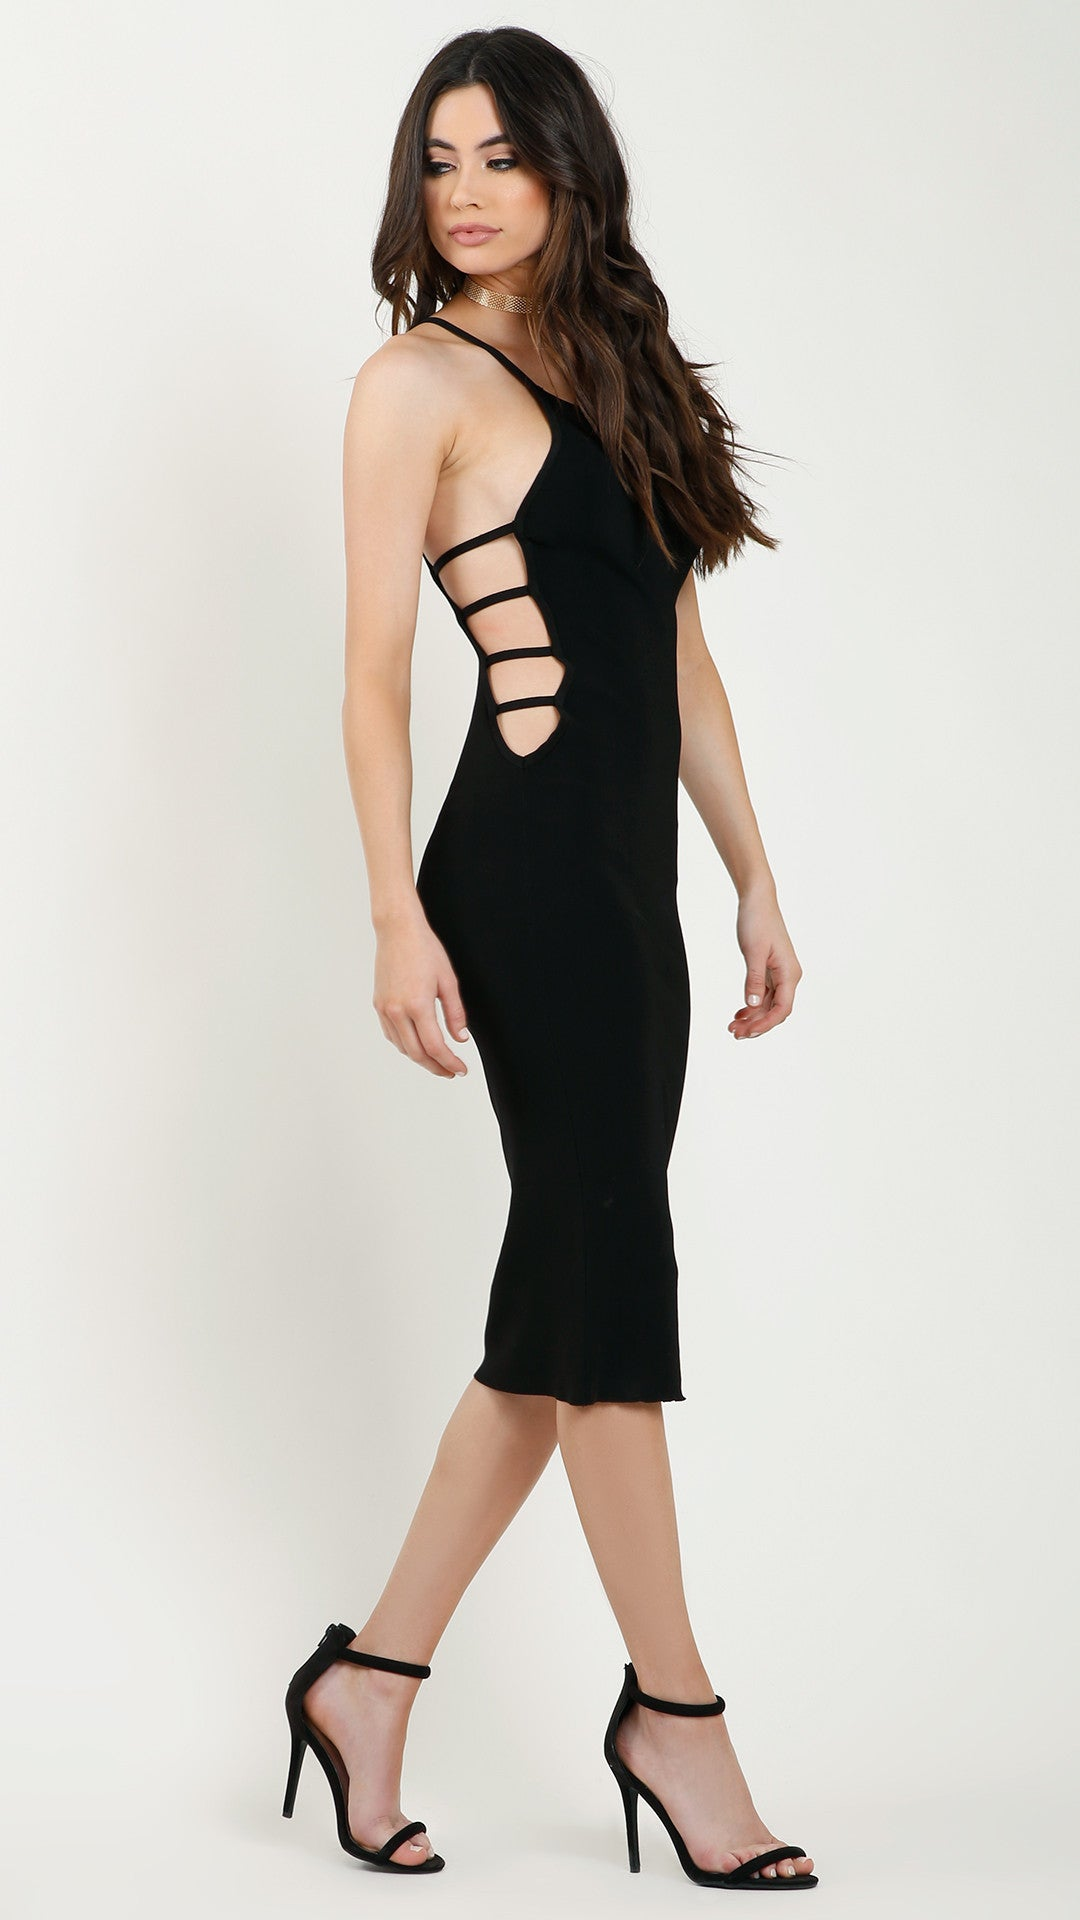 a29306a082 Sexy Ladder Side Cutout Pencil Dress - ANGL